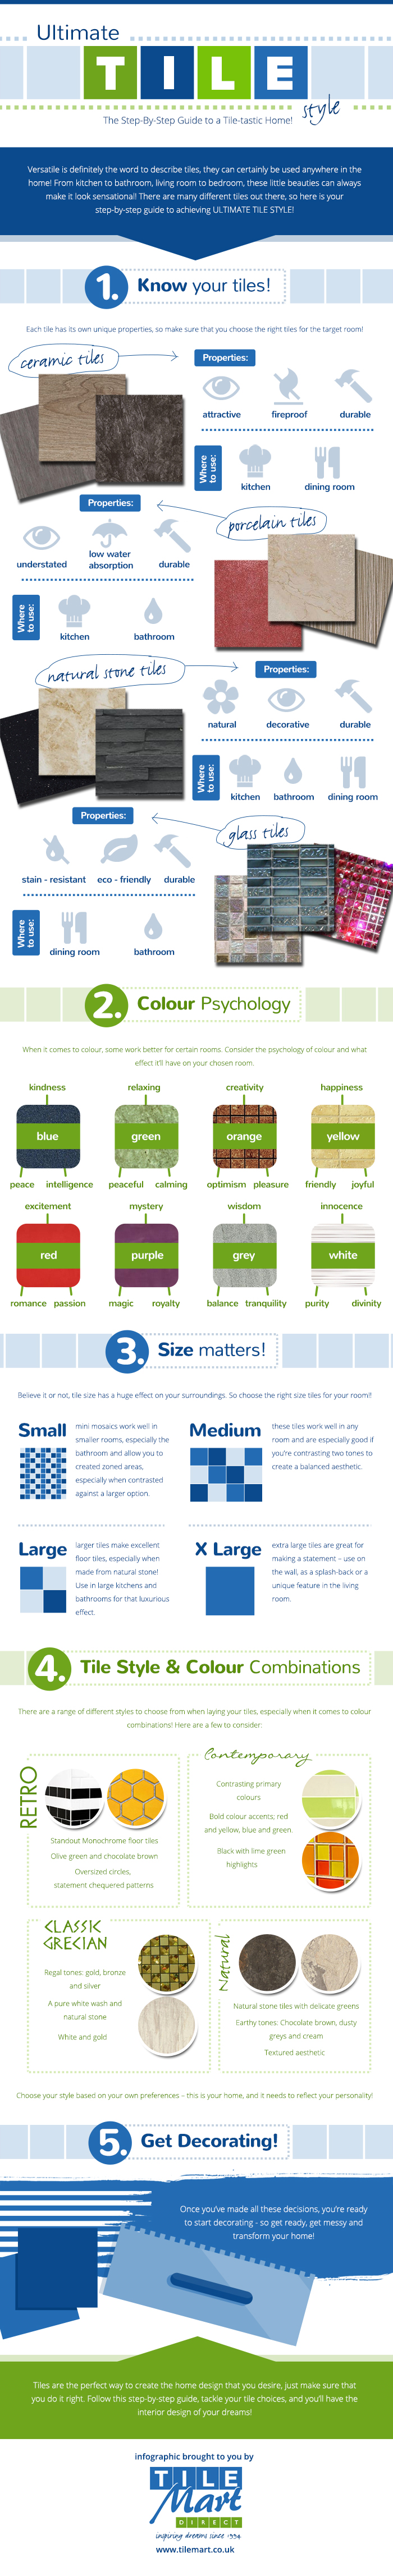 Tile Mart Infographic